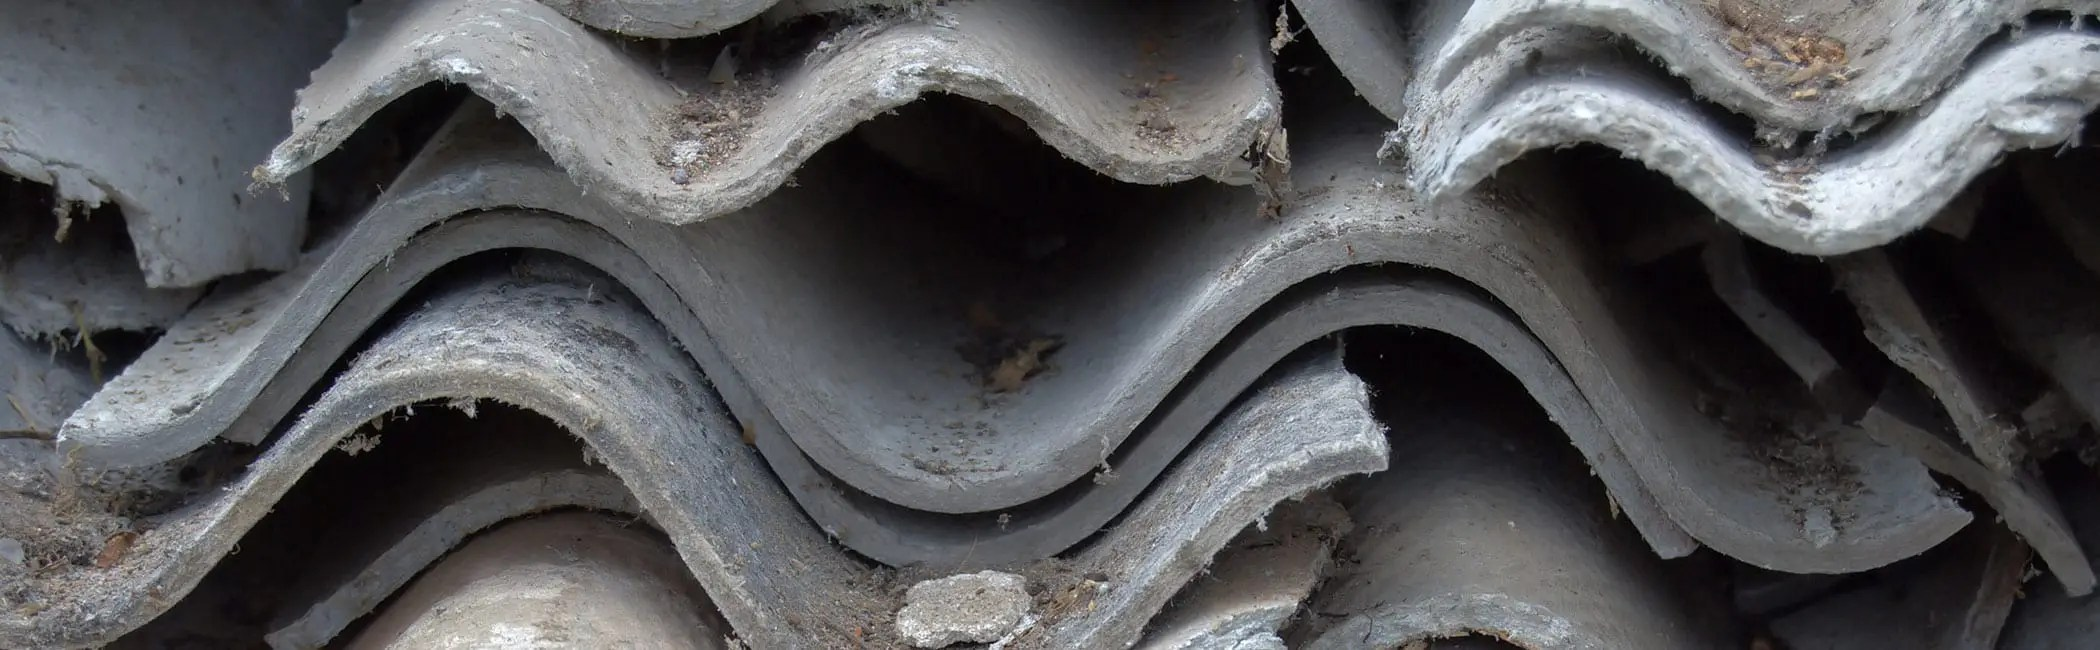 how to test for asbestos guide high